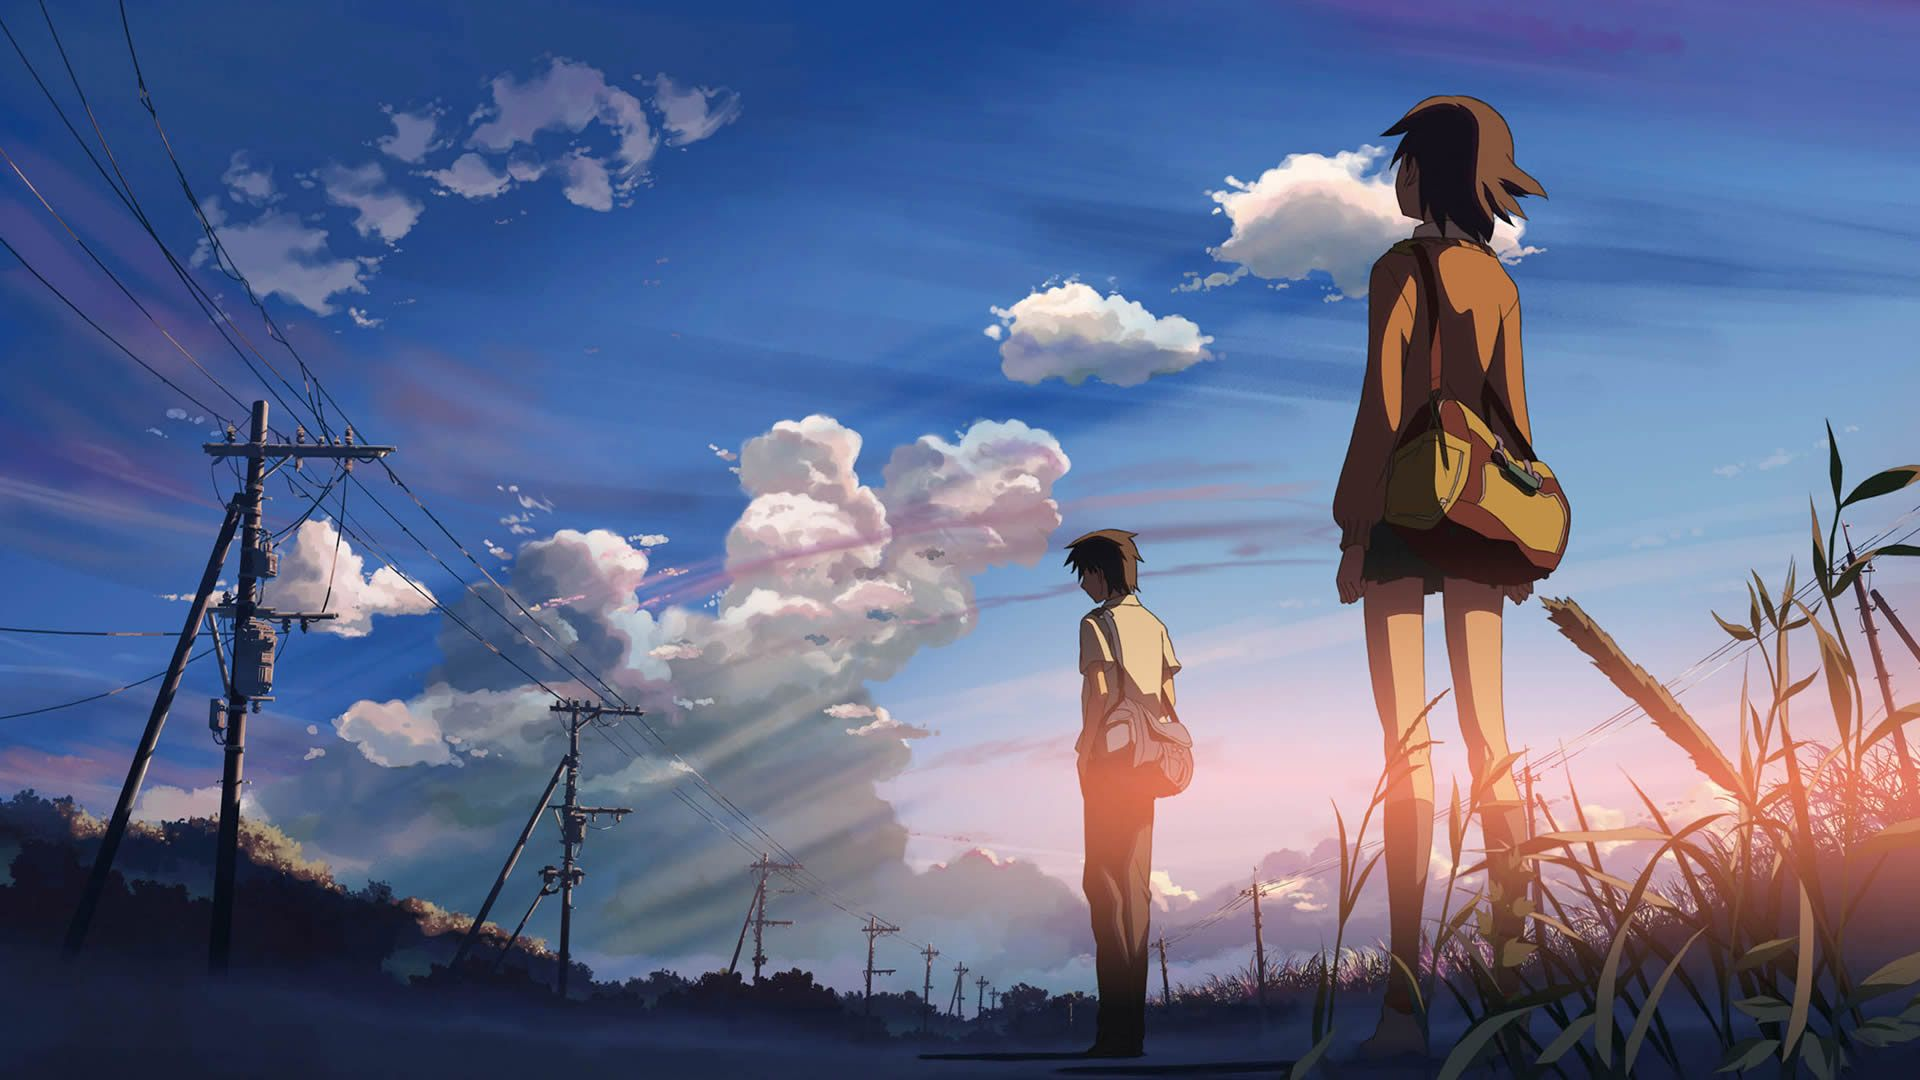 Wallpaper For Laptop Free Anime X Free Wallpapers For Laptops Free Wallpaper Download 1680